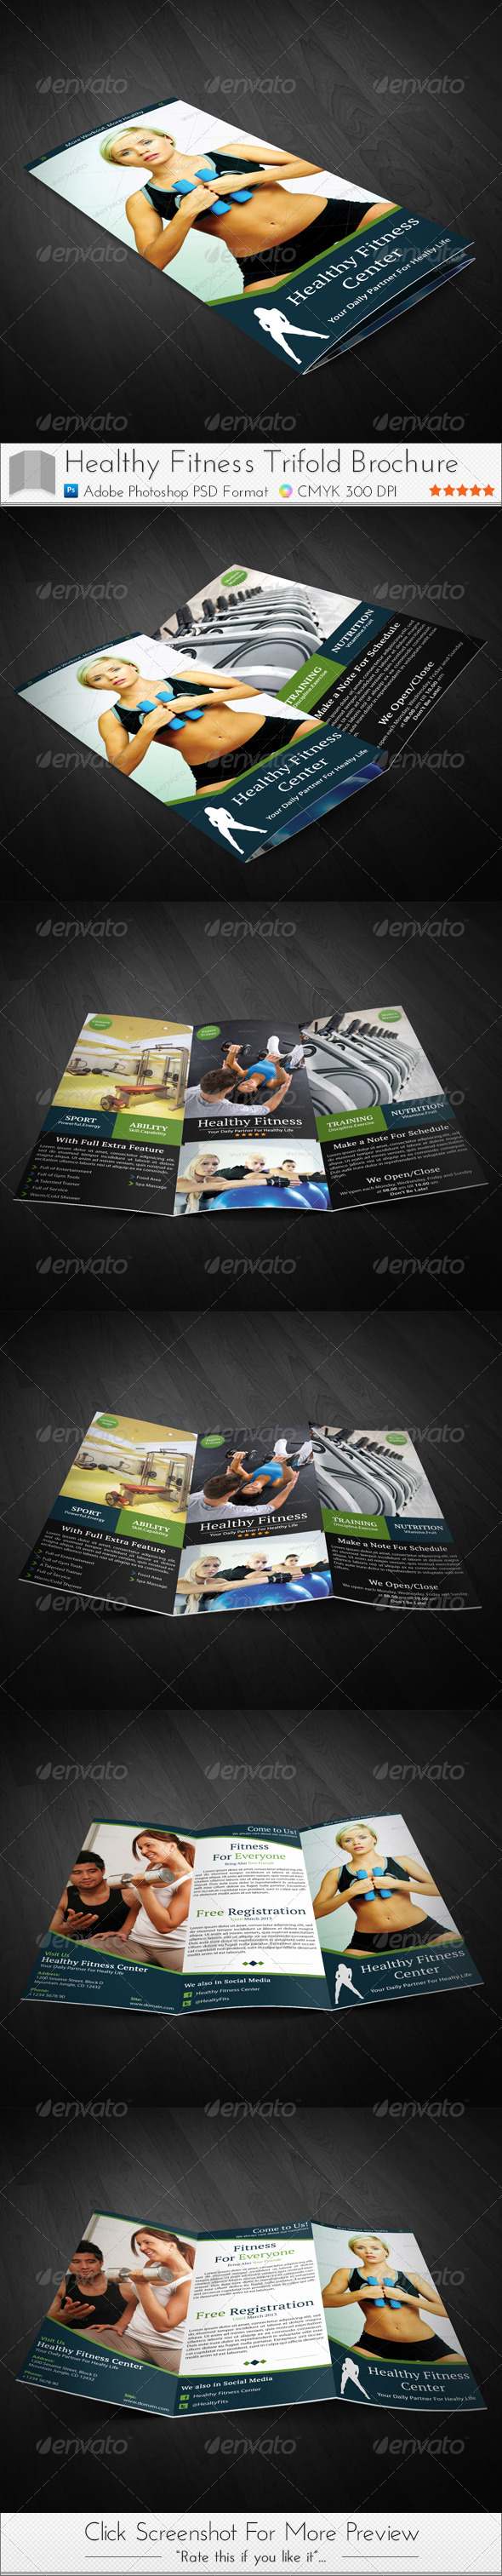 GraphicRiver Healthy Fitness Trifold Brochures 3797722